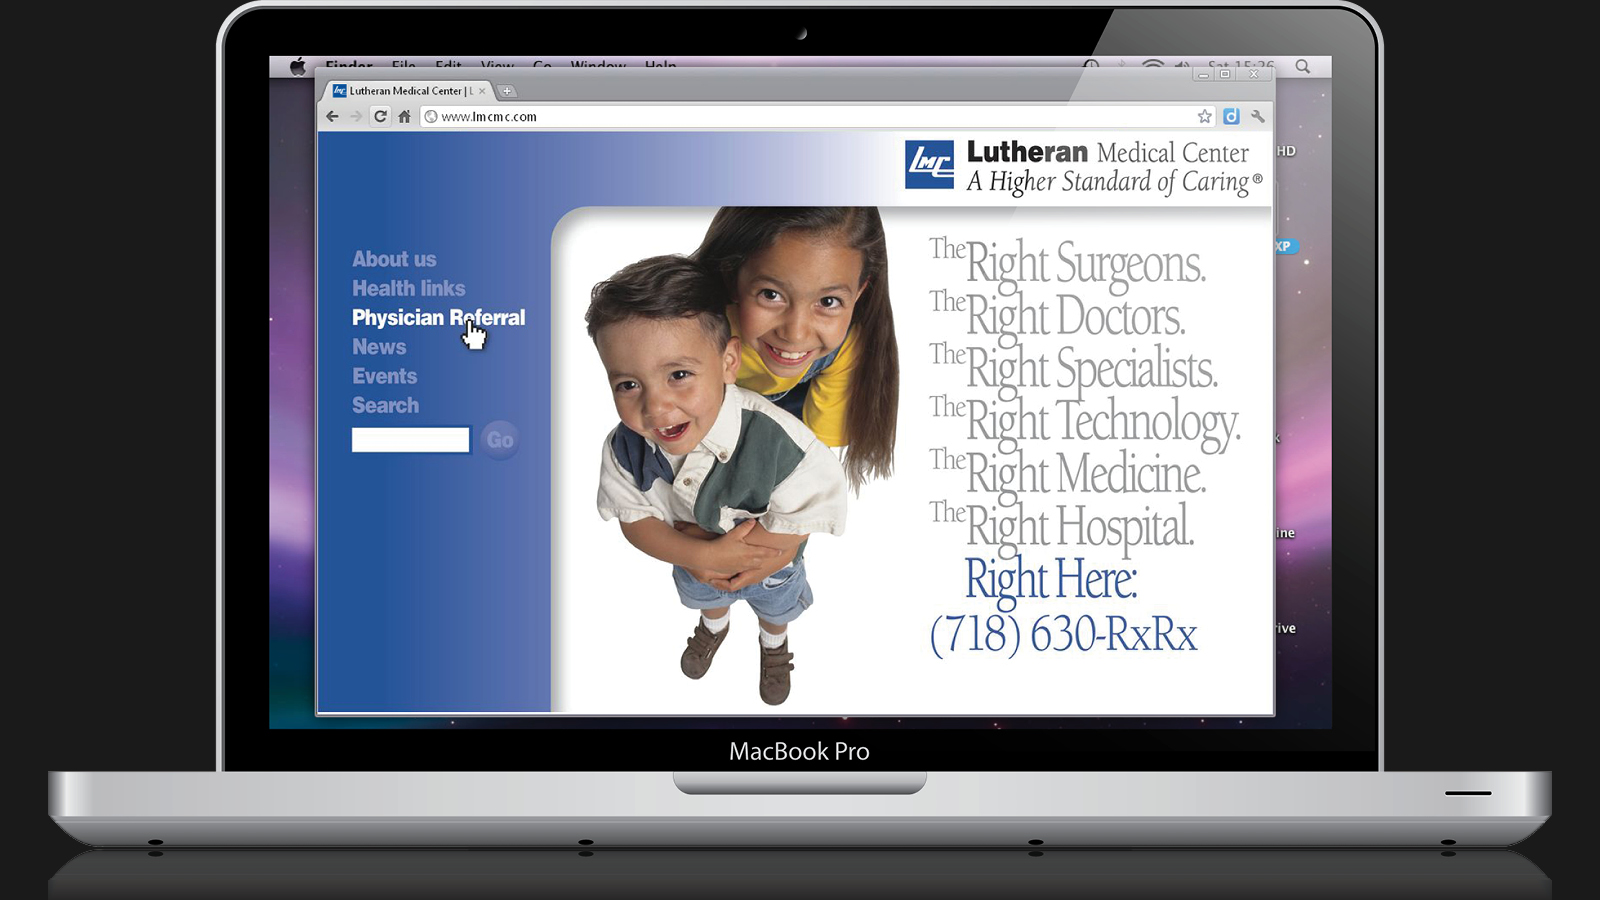 Lutheran Medical Center Web Site Design